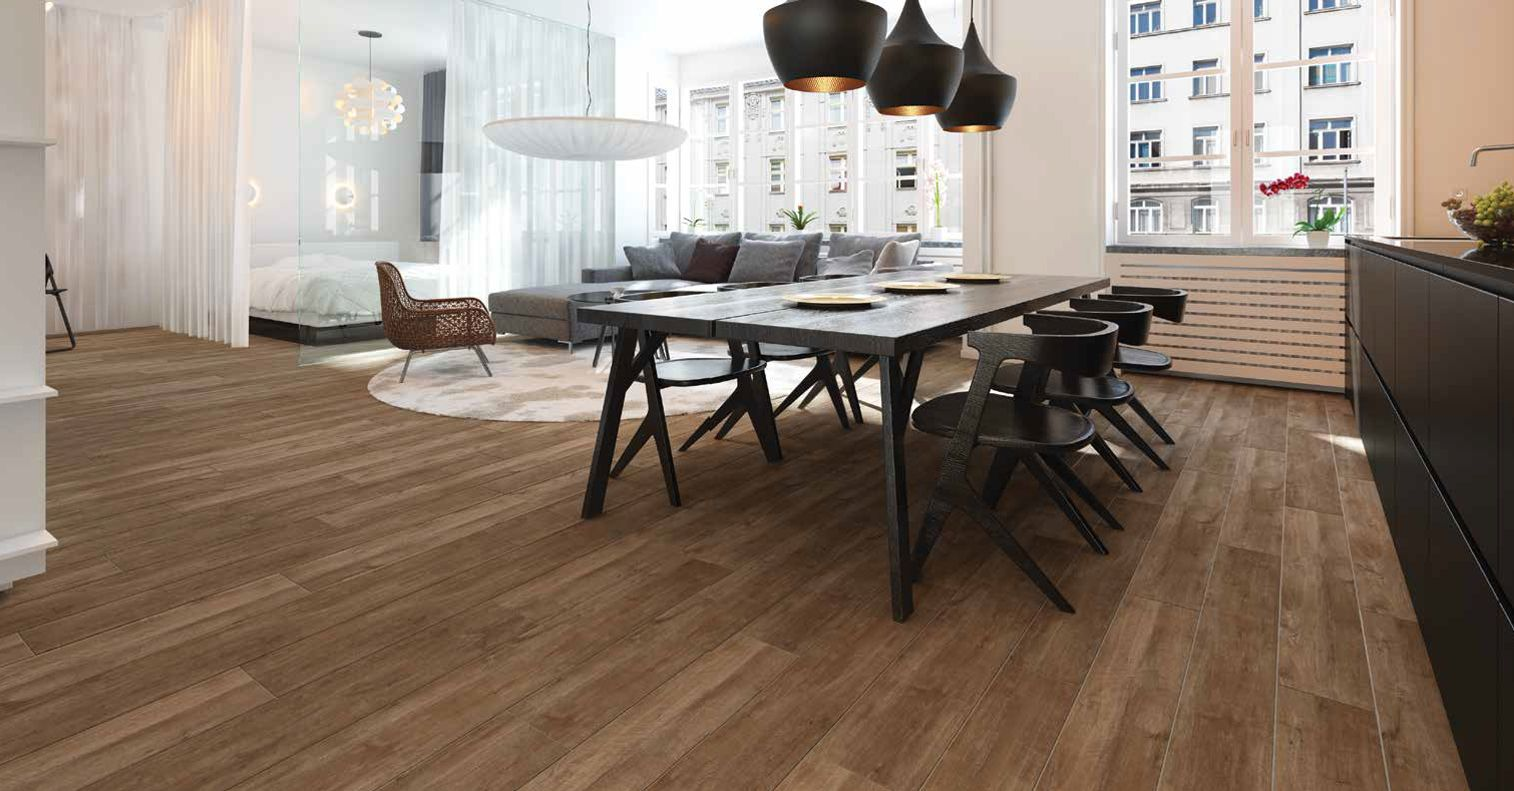 Yukon 6060 rak ceramics emarcity gres porcelaine rak rak ceramics produces the best floor and wall tiles in porcelain stoneware and ceramic quality products guaranteed by international certifications doublecrazyfo Choice Image